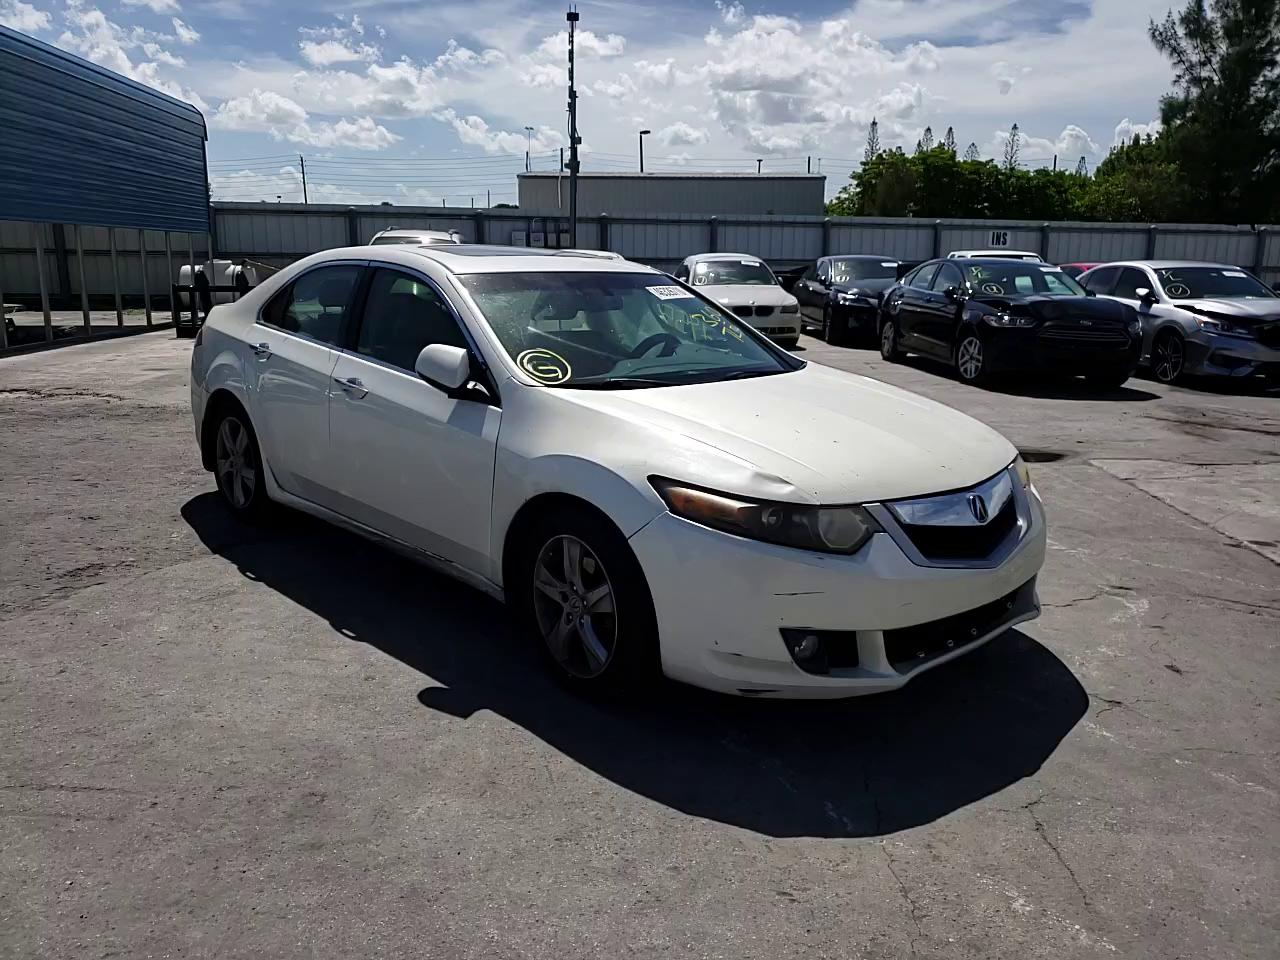 Salvage 2009 ACURA TSX - Small image. Lot 46326710